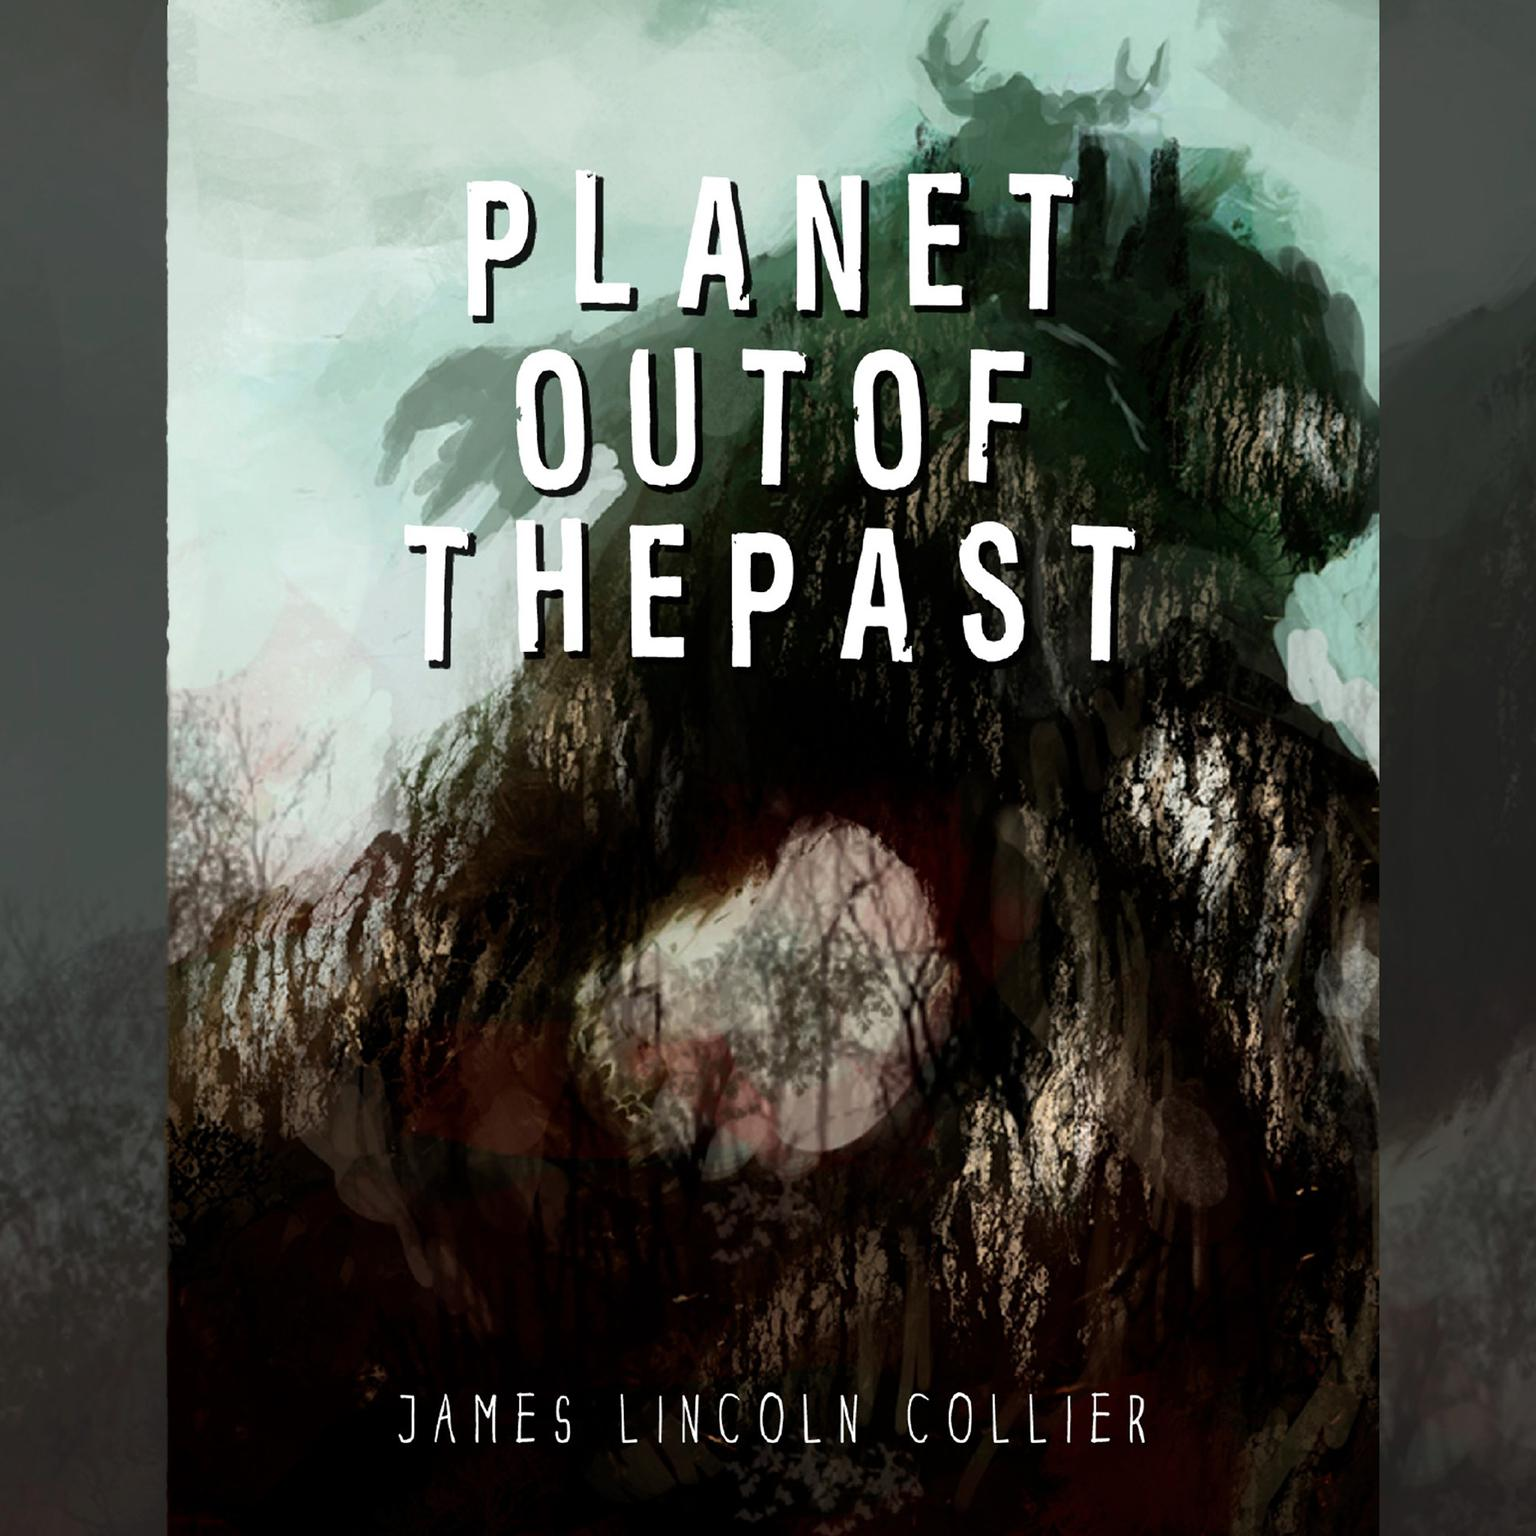 Printable Planet out of the Past Audiobook Cover Art